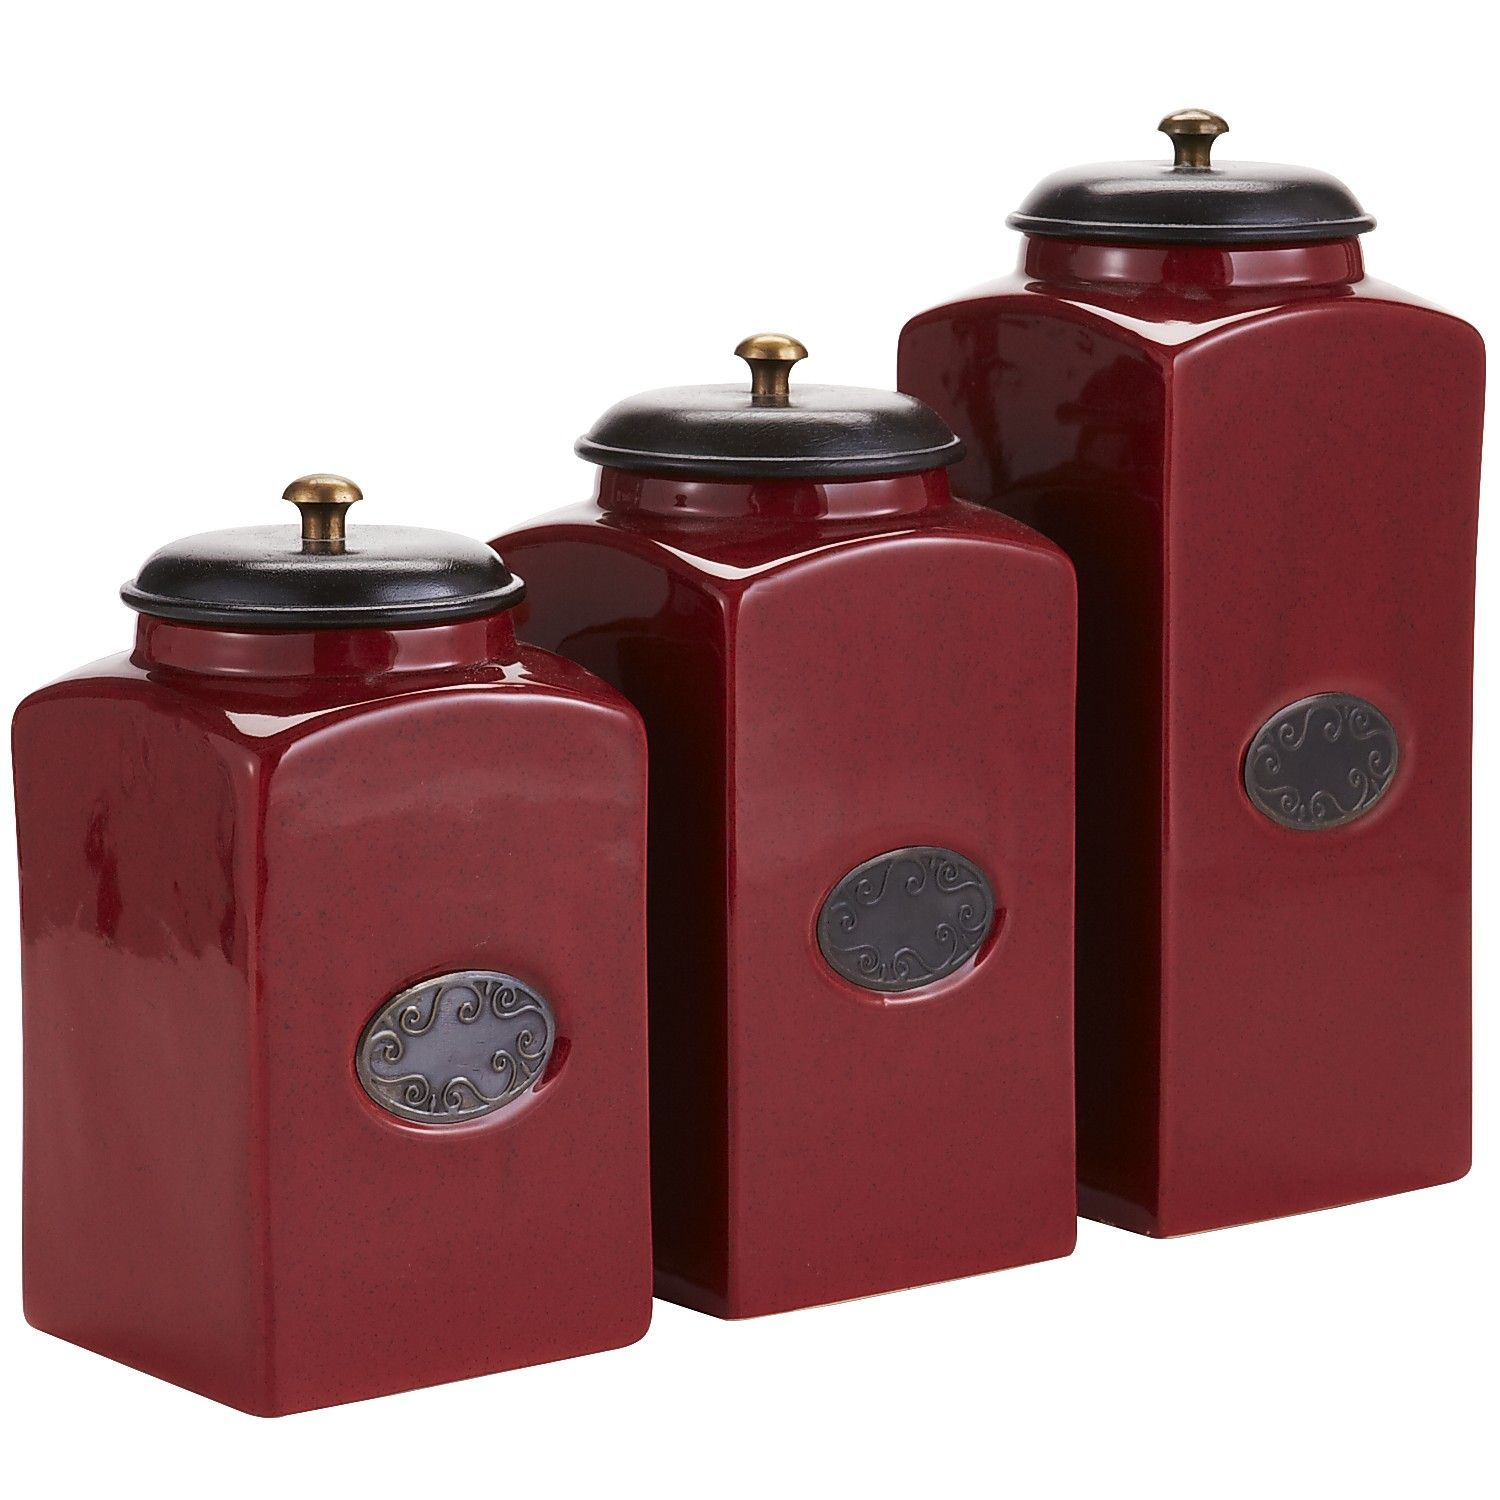 red canister set for kitchen bakers racks kitchens ceramic canisters ideas new apt pinterest